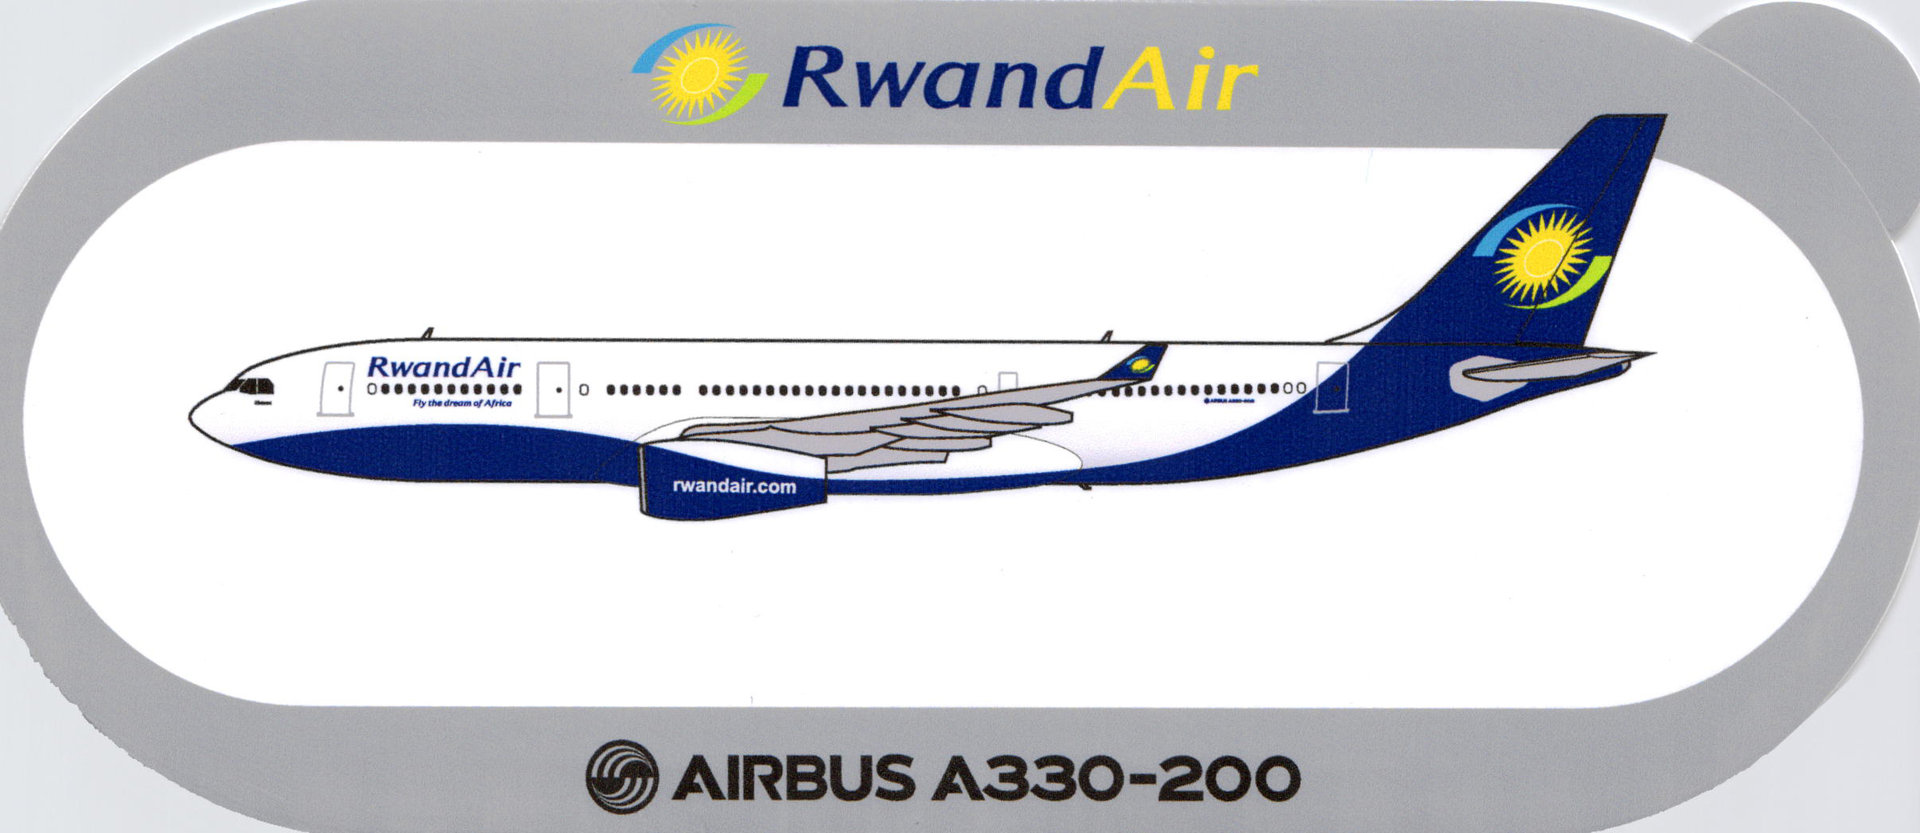 Airbus Sticker A330-200 von Rwand Air